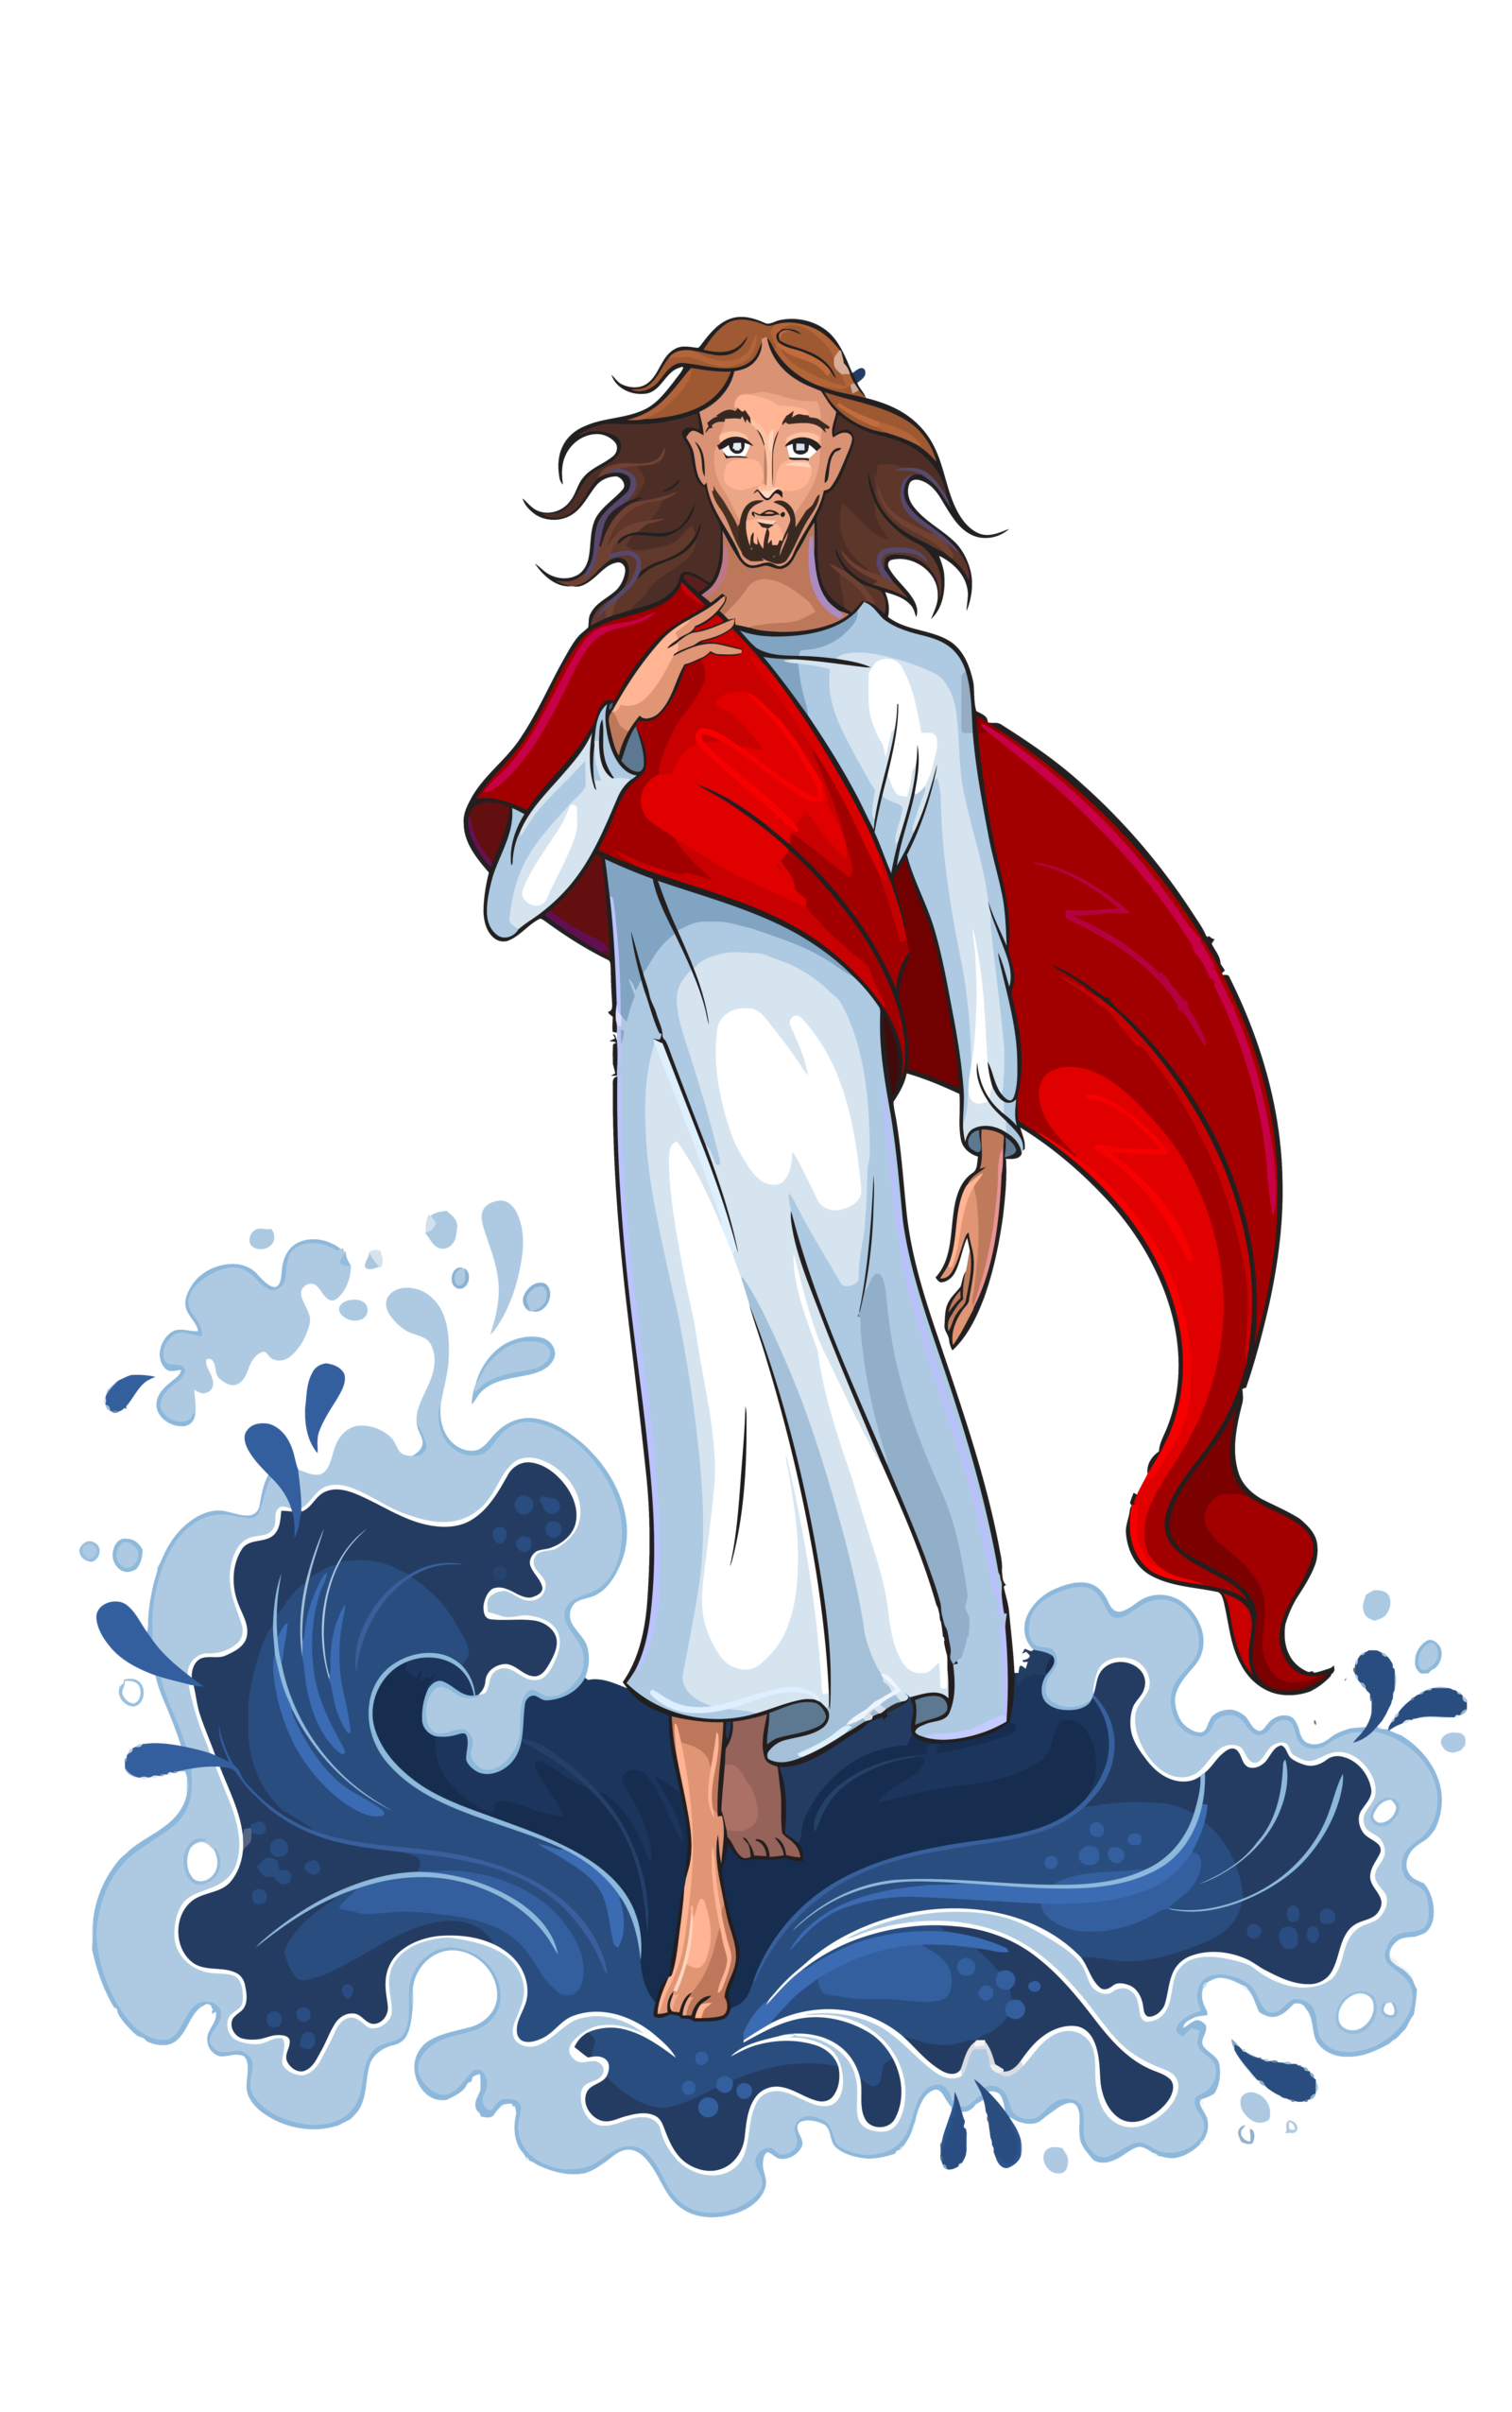 Jesus sacred heart clipart picture royalty free download Image result for JESUS VECTOR | kmino 15 | Pinterest picture royalty free download